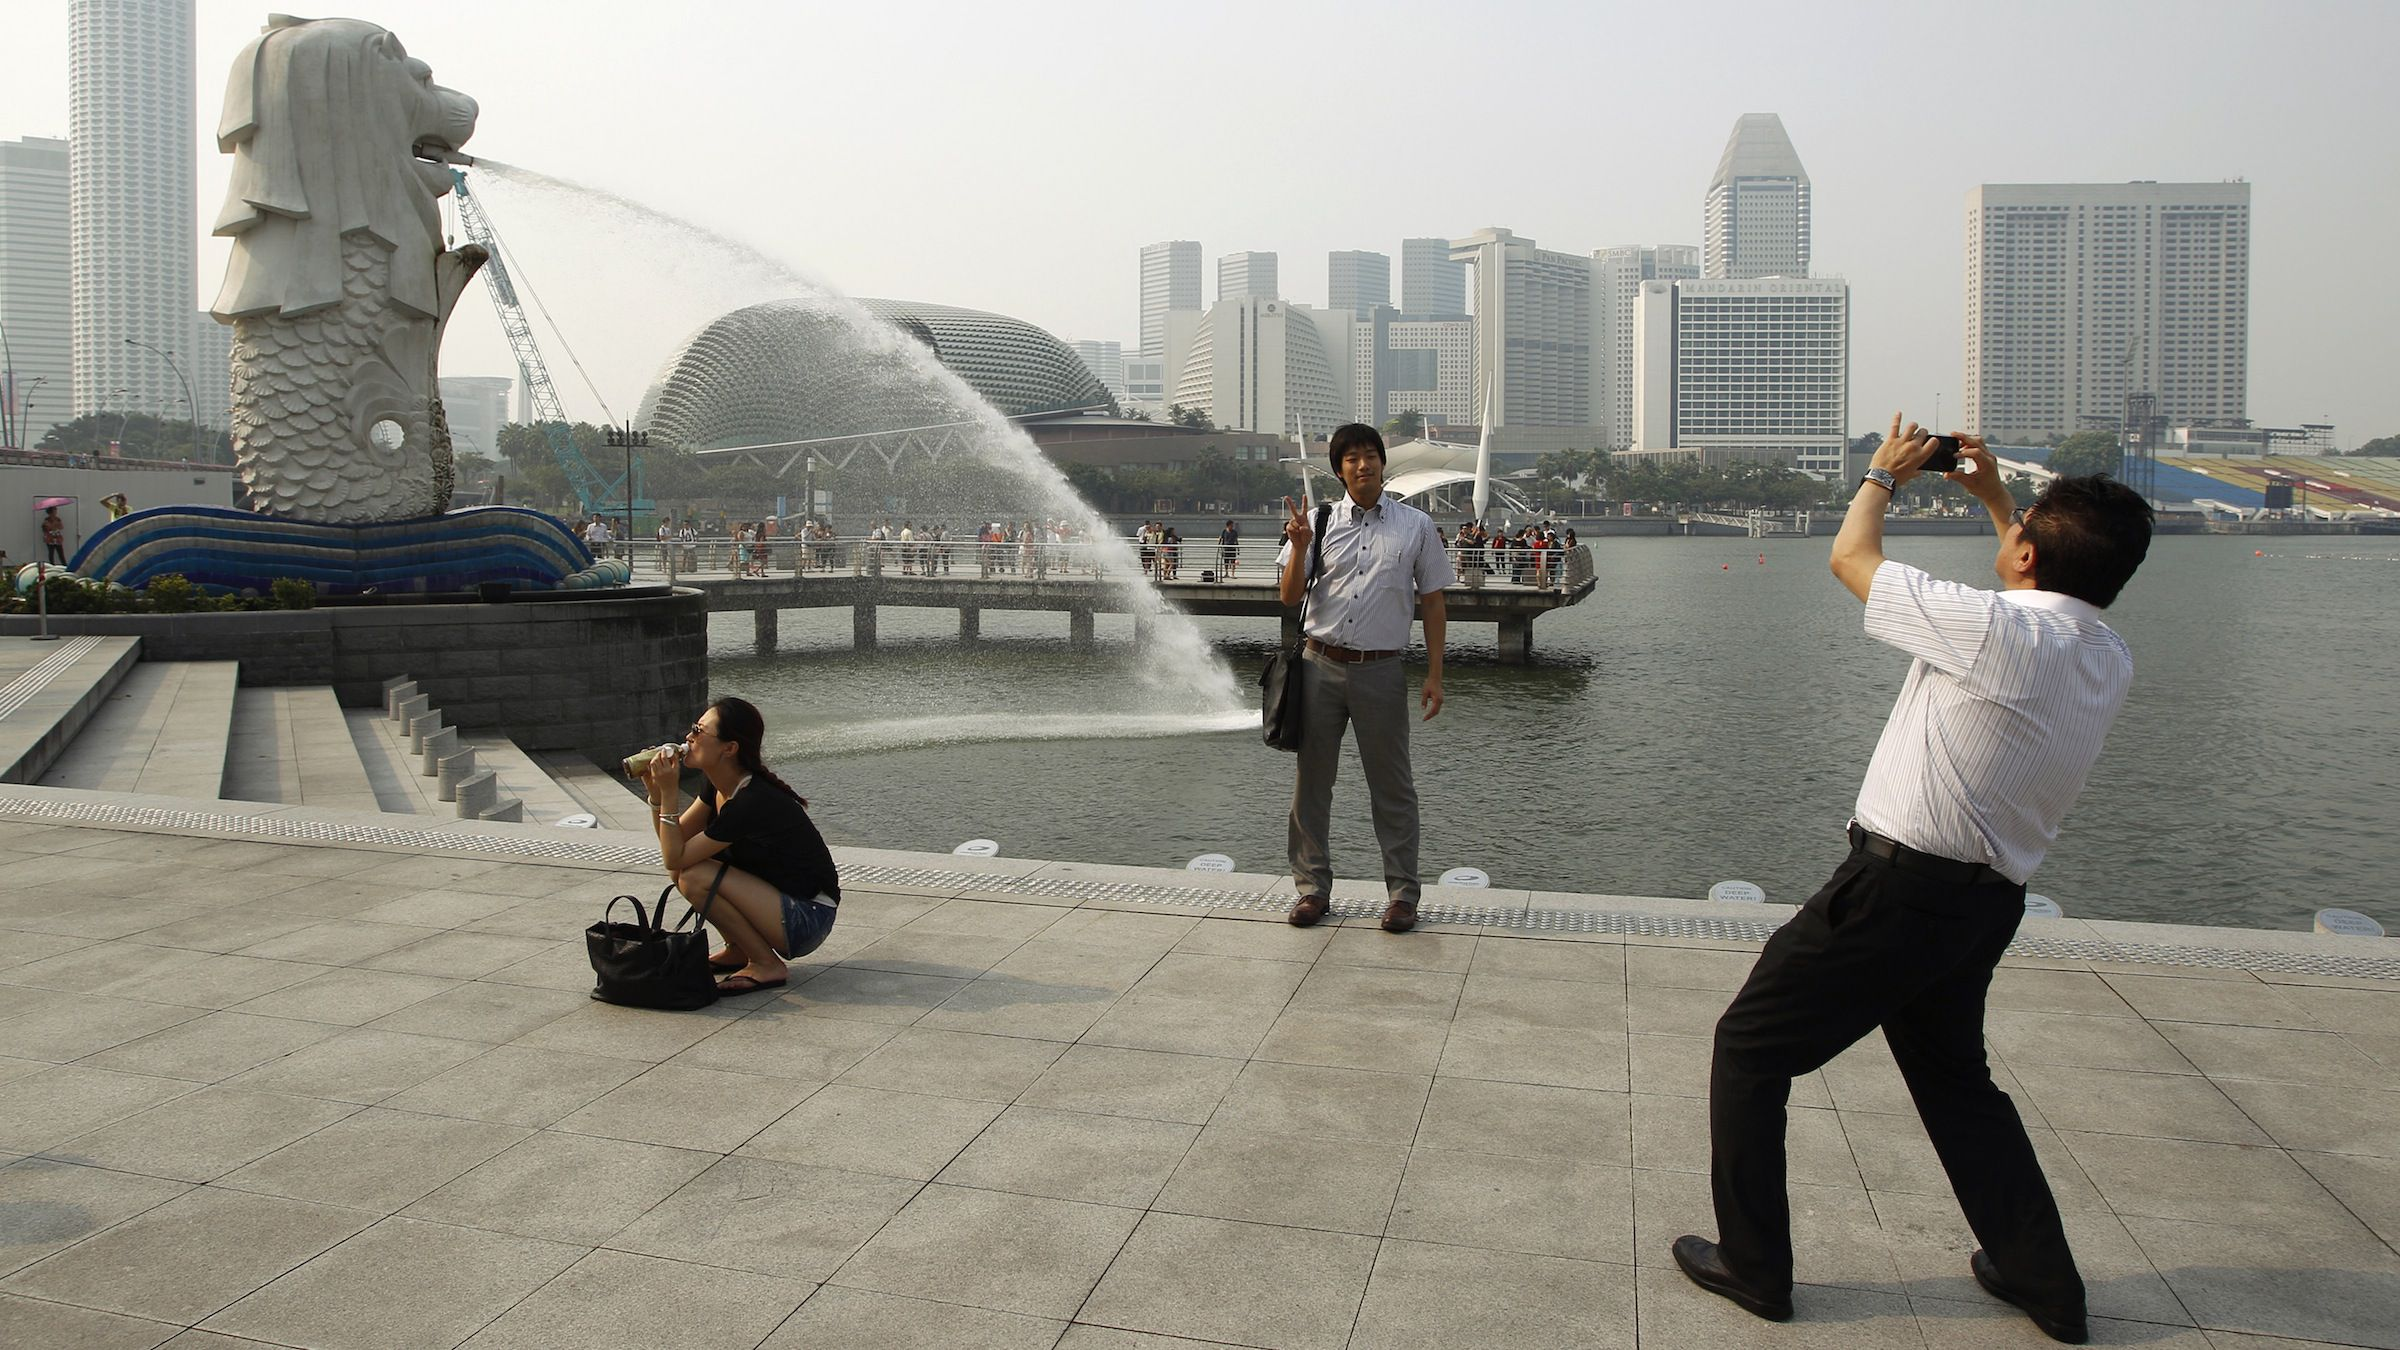 Tourists take photos of the Merlion in the hazy skyline of Singapore June 18, 2013. Air pollution in Singapore and Malaysia rose to unhealthy levels on Monday thanks to illegal forest clearing in Indonesia, prompting Singapore to advise people against staying outdoors for long and to urge Indonesia to do something to stop it.  REUTERS/Edgar Su (SINGAPORE - Tags: ENVIRONMENT TRAVEL) - RTX10RTH